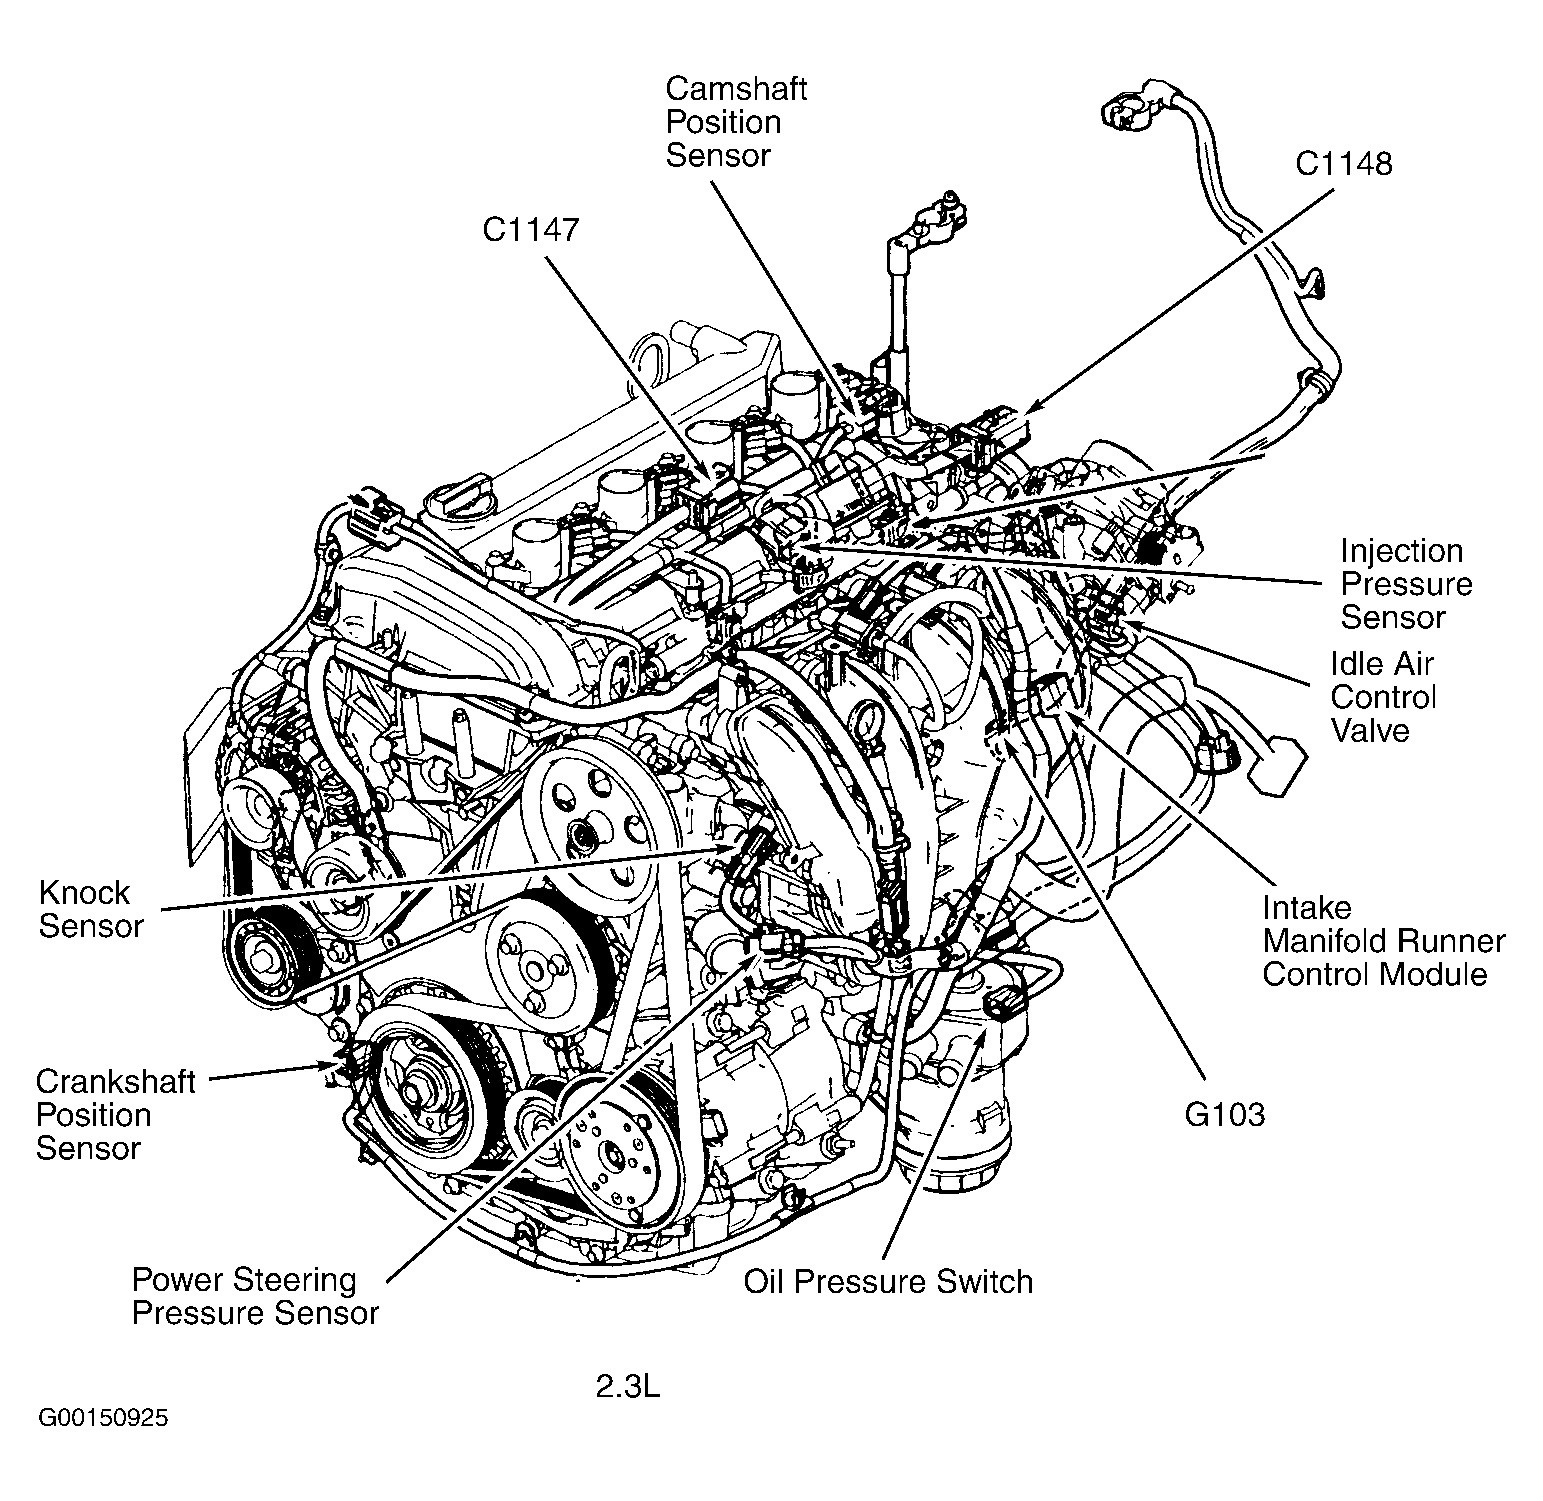 Ford Focus Engine Hose Diagram